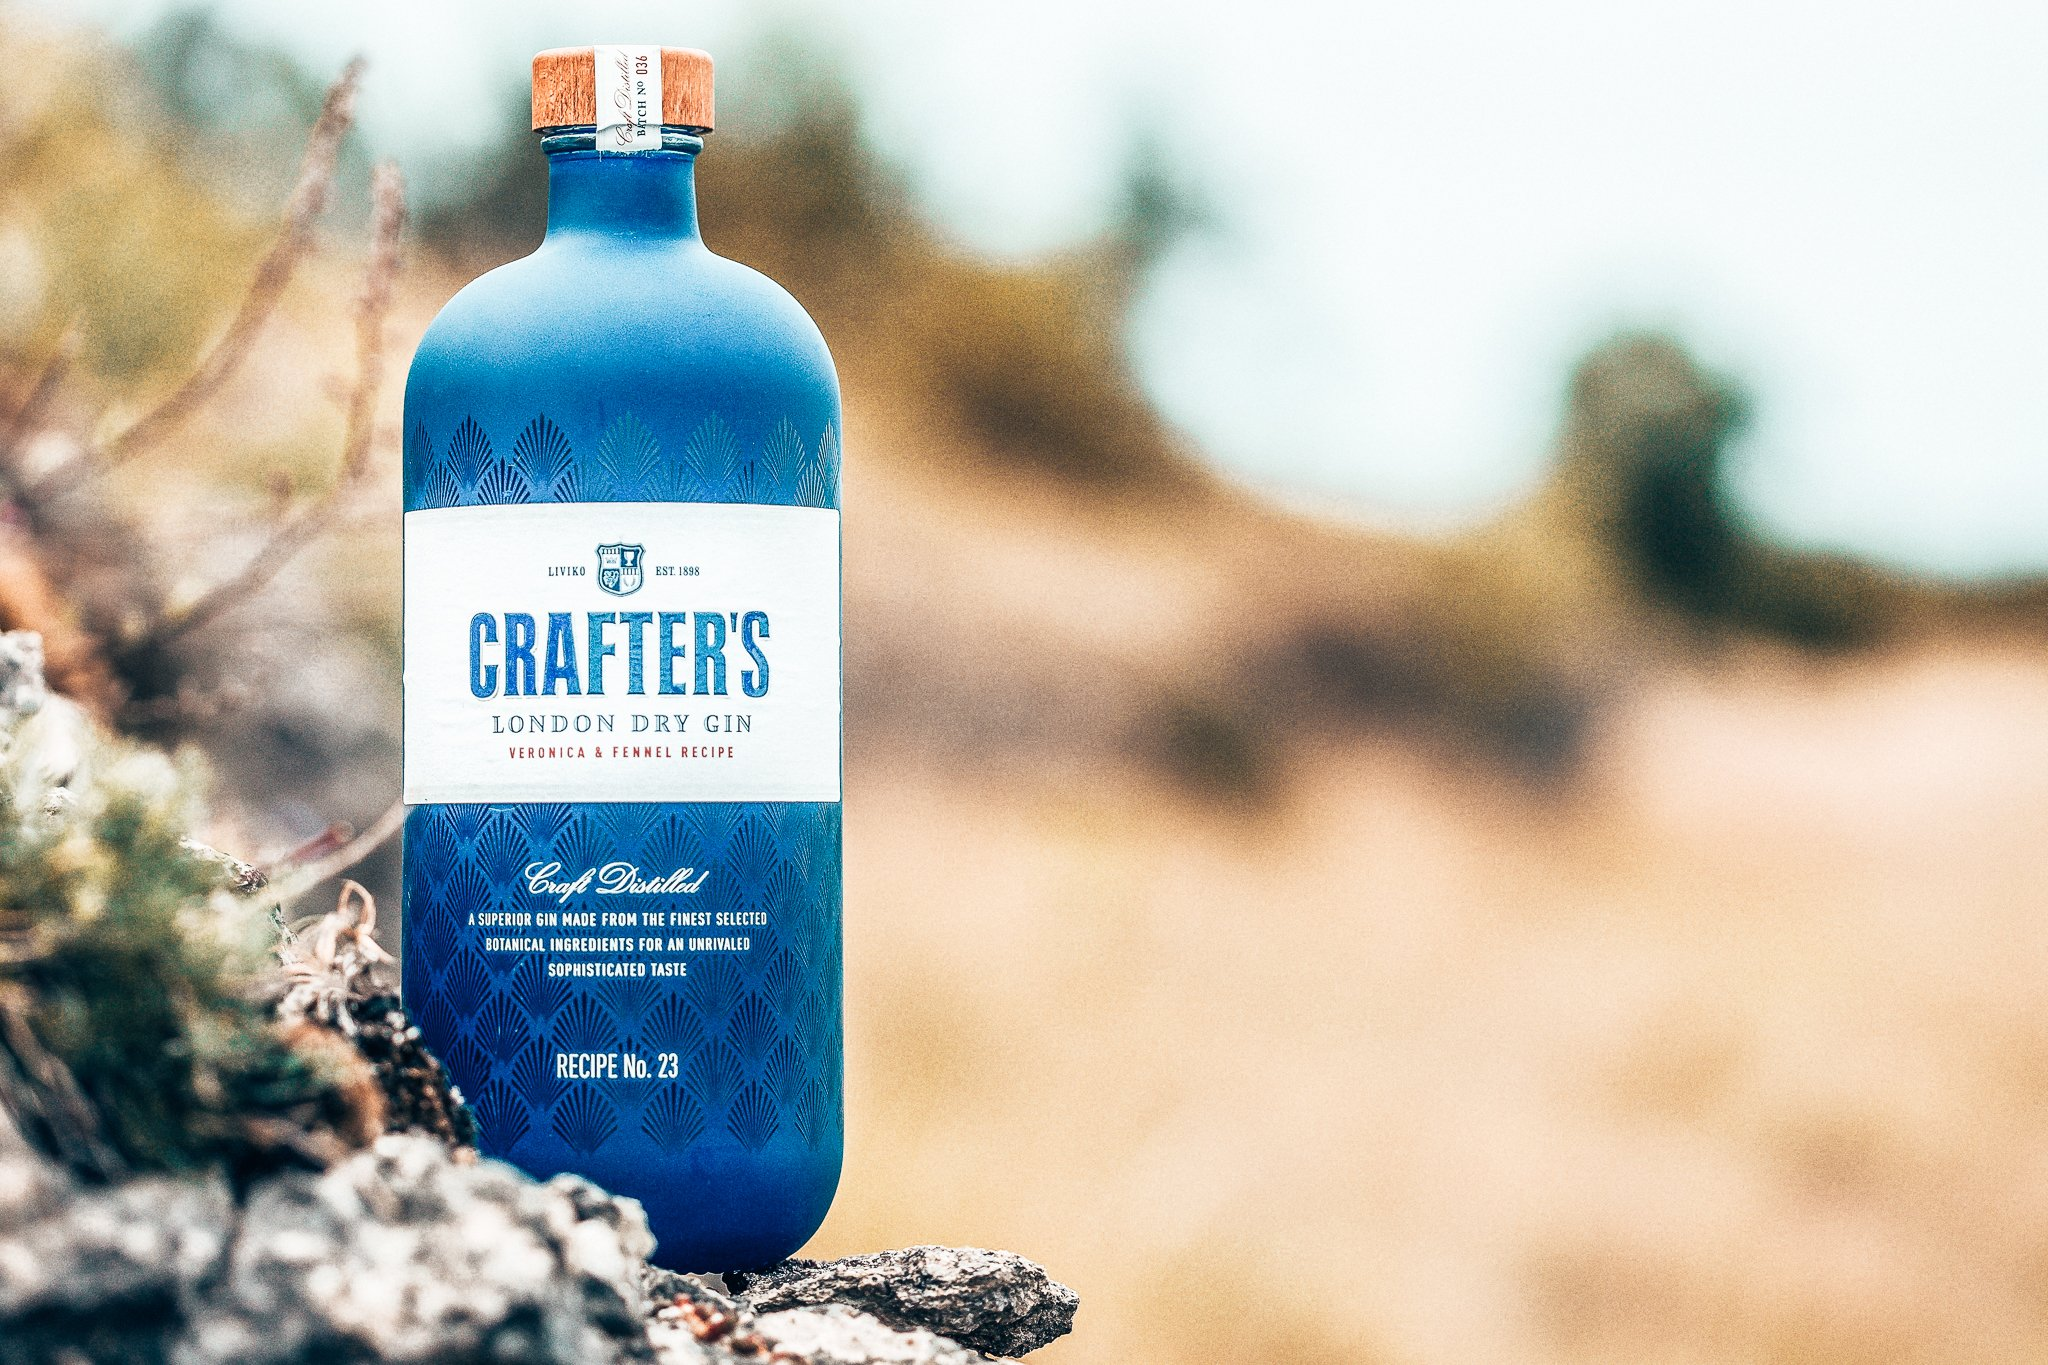 Crafter's London Dry Gin, Liviko Distillery, Alles over gin.